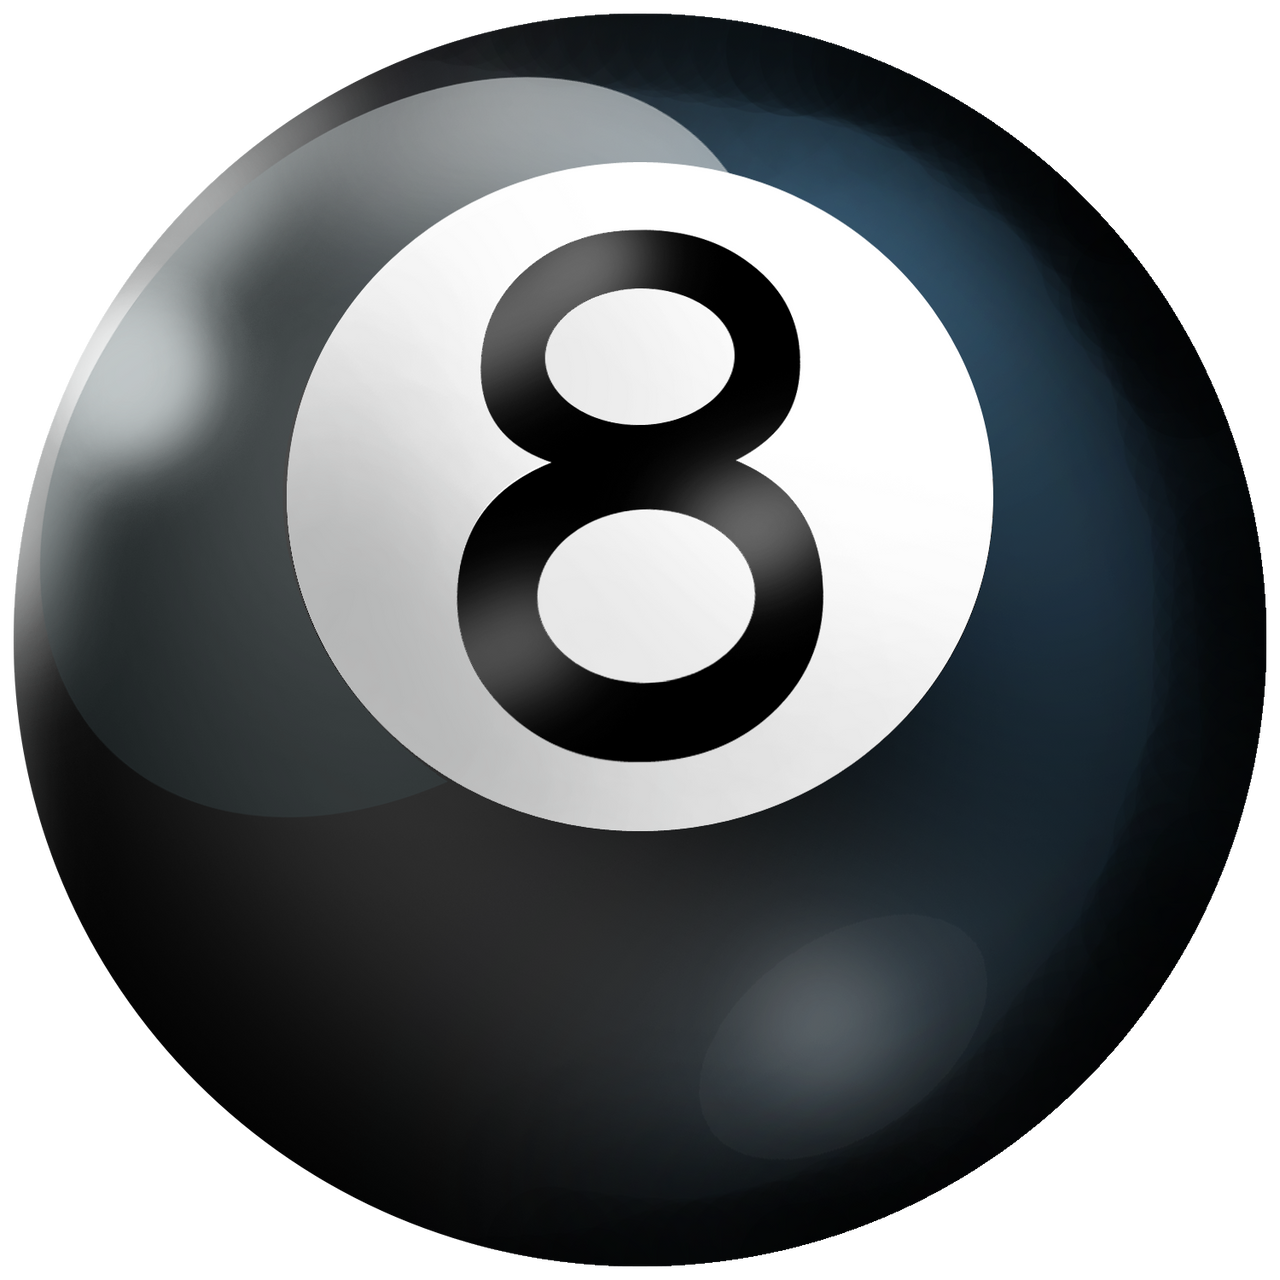 DLNORTON Eightball Clipart by DLNorton on DeviantArt